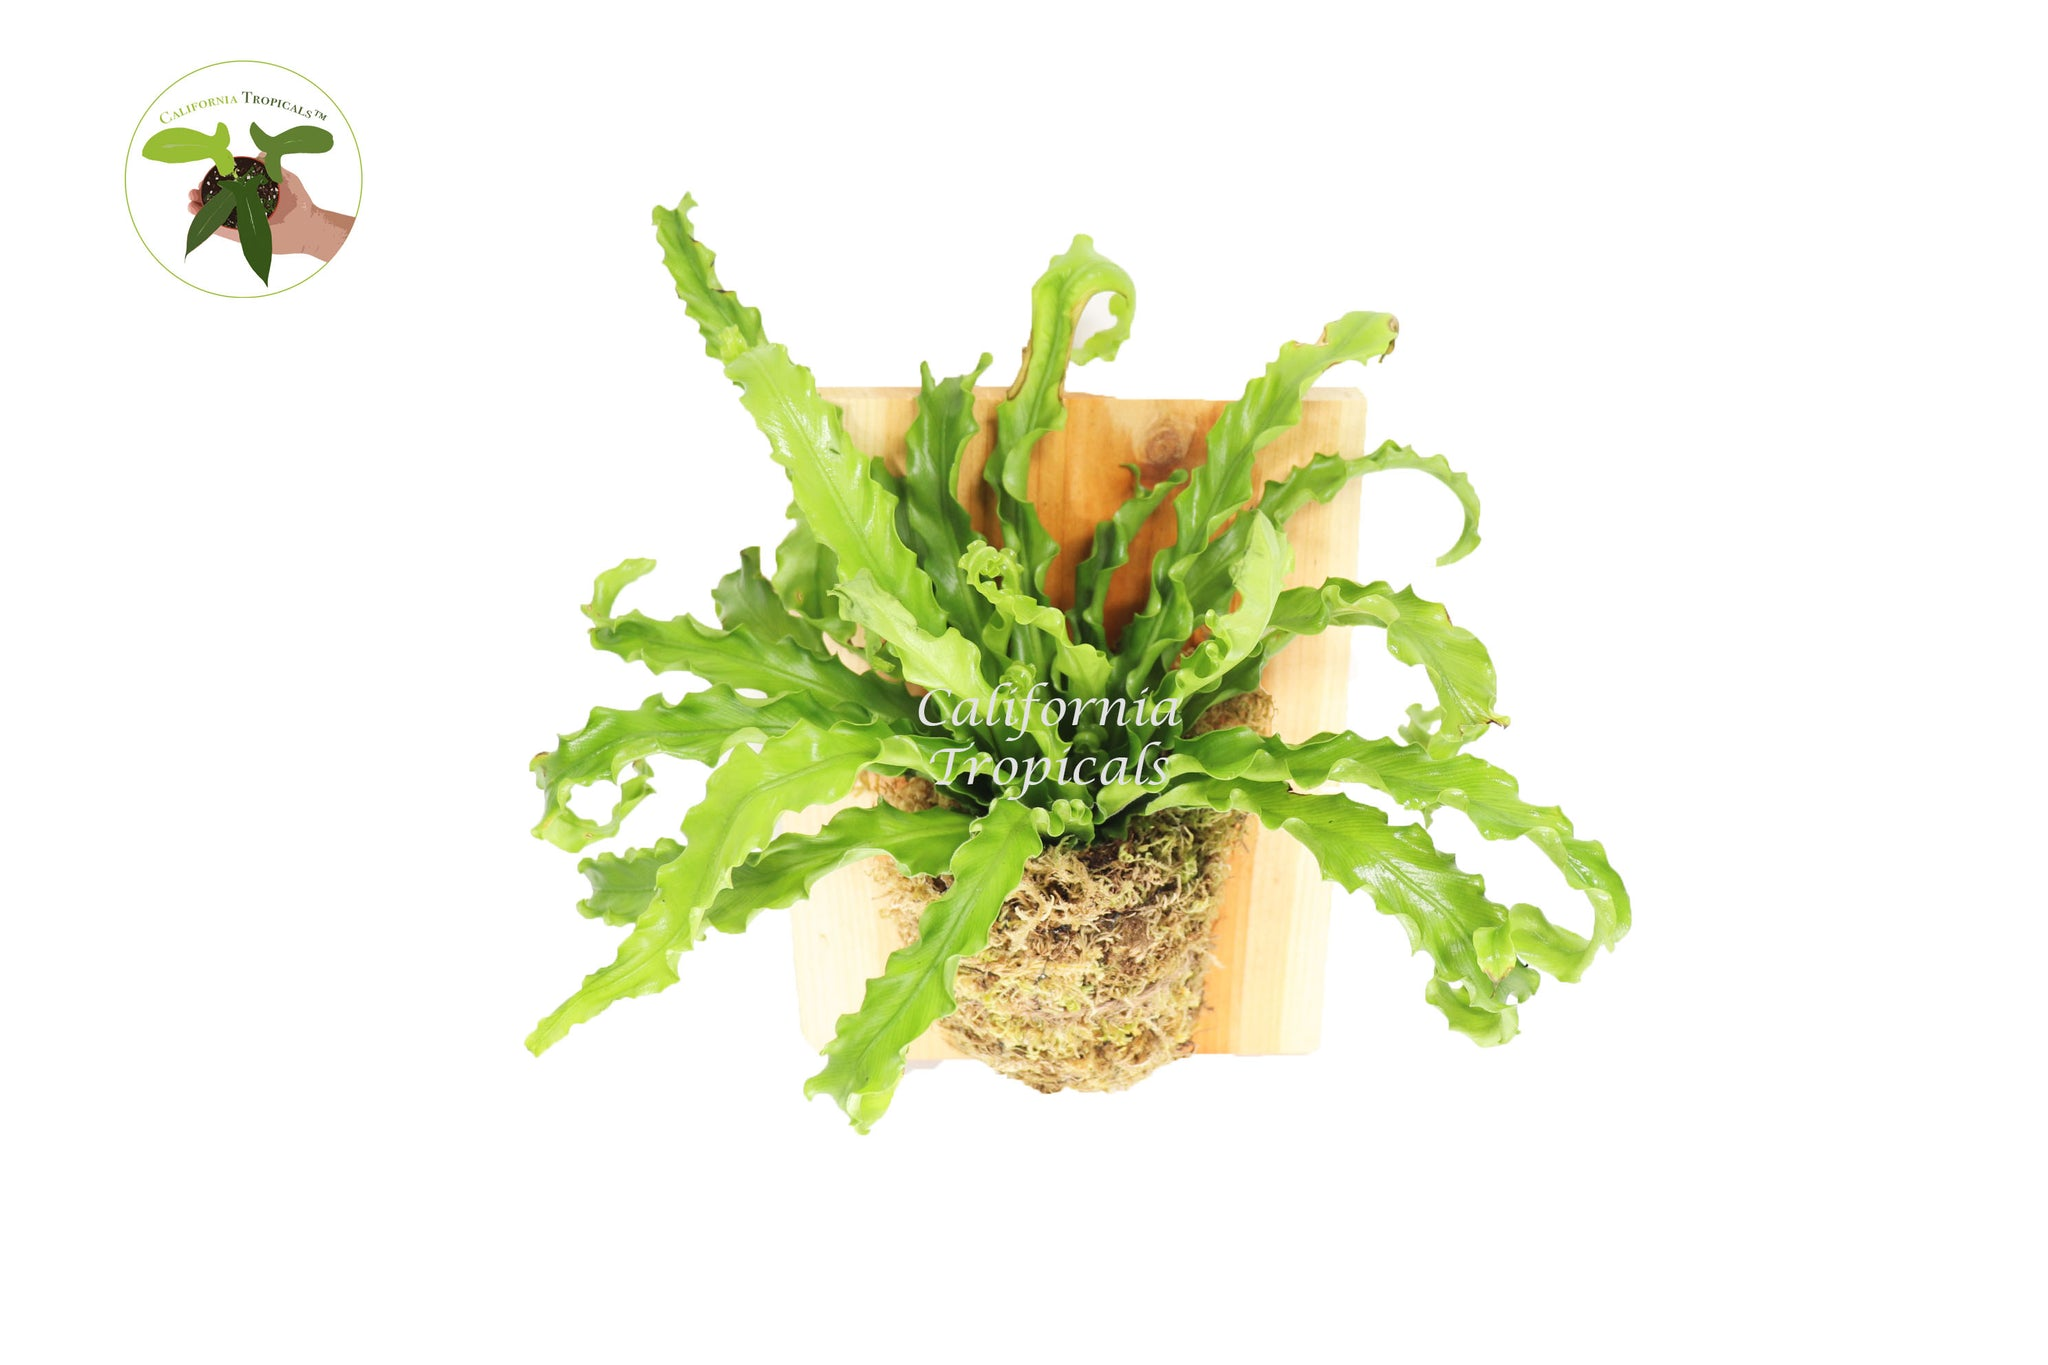 Bird's Nest 'Leslie' Fern on a Wooden Plaque from California Tropicals